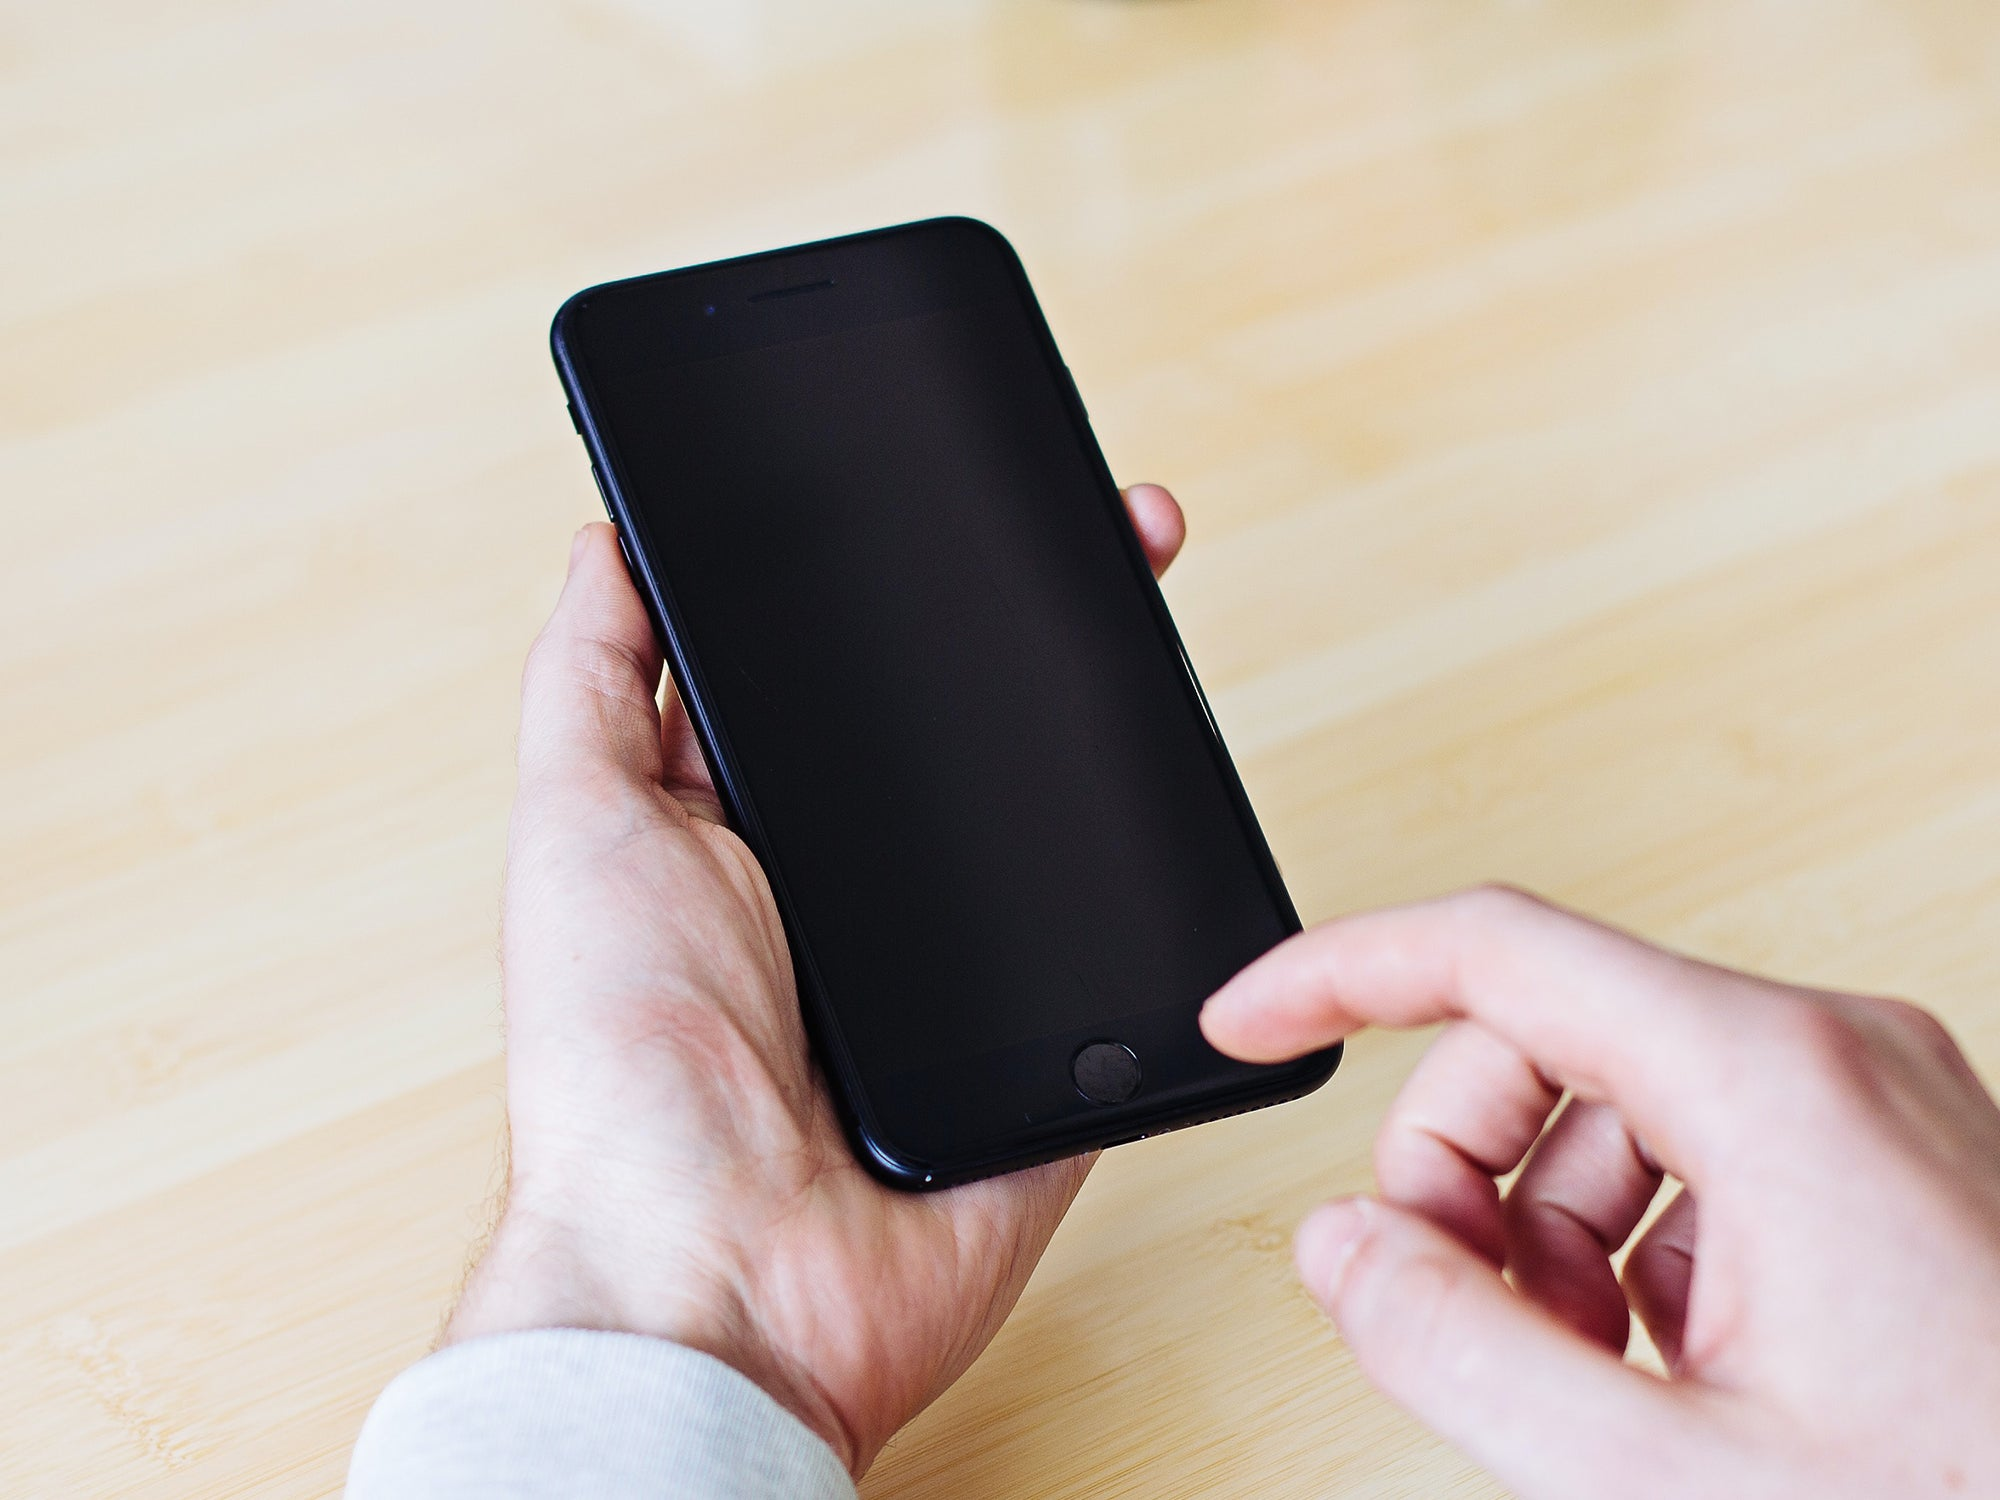 a person holding a dead phone in their hands